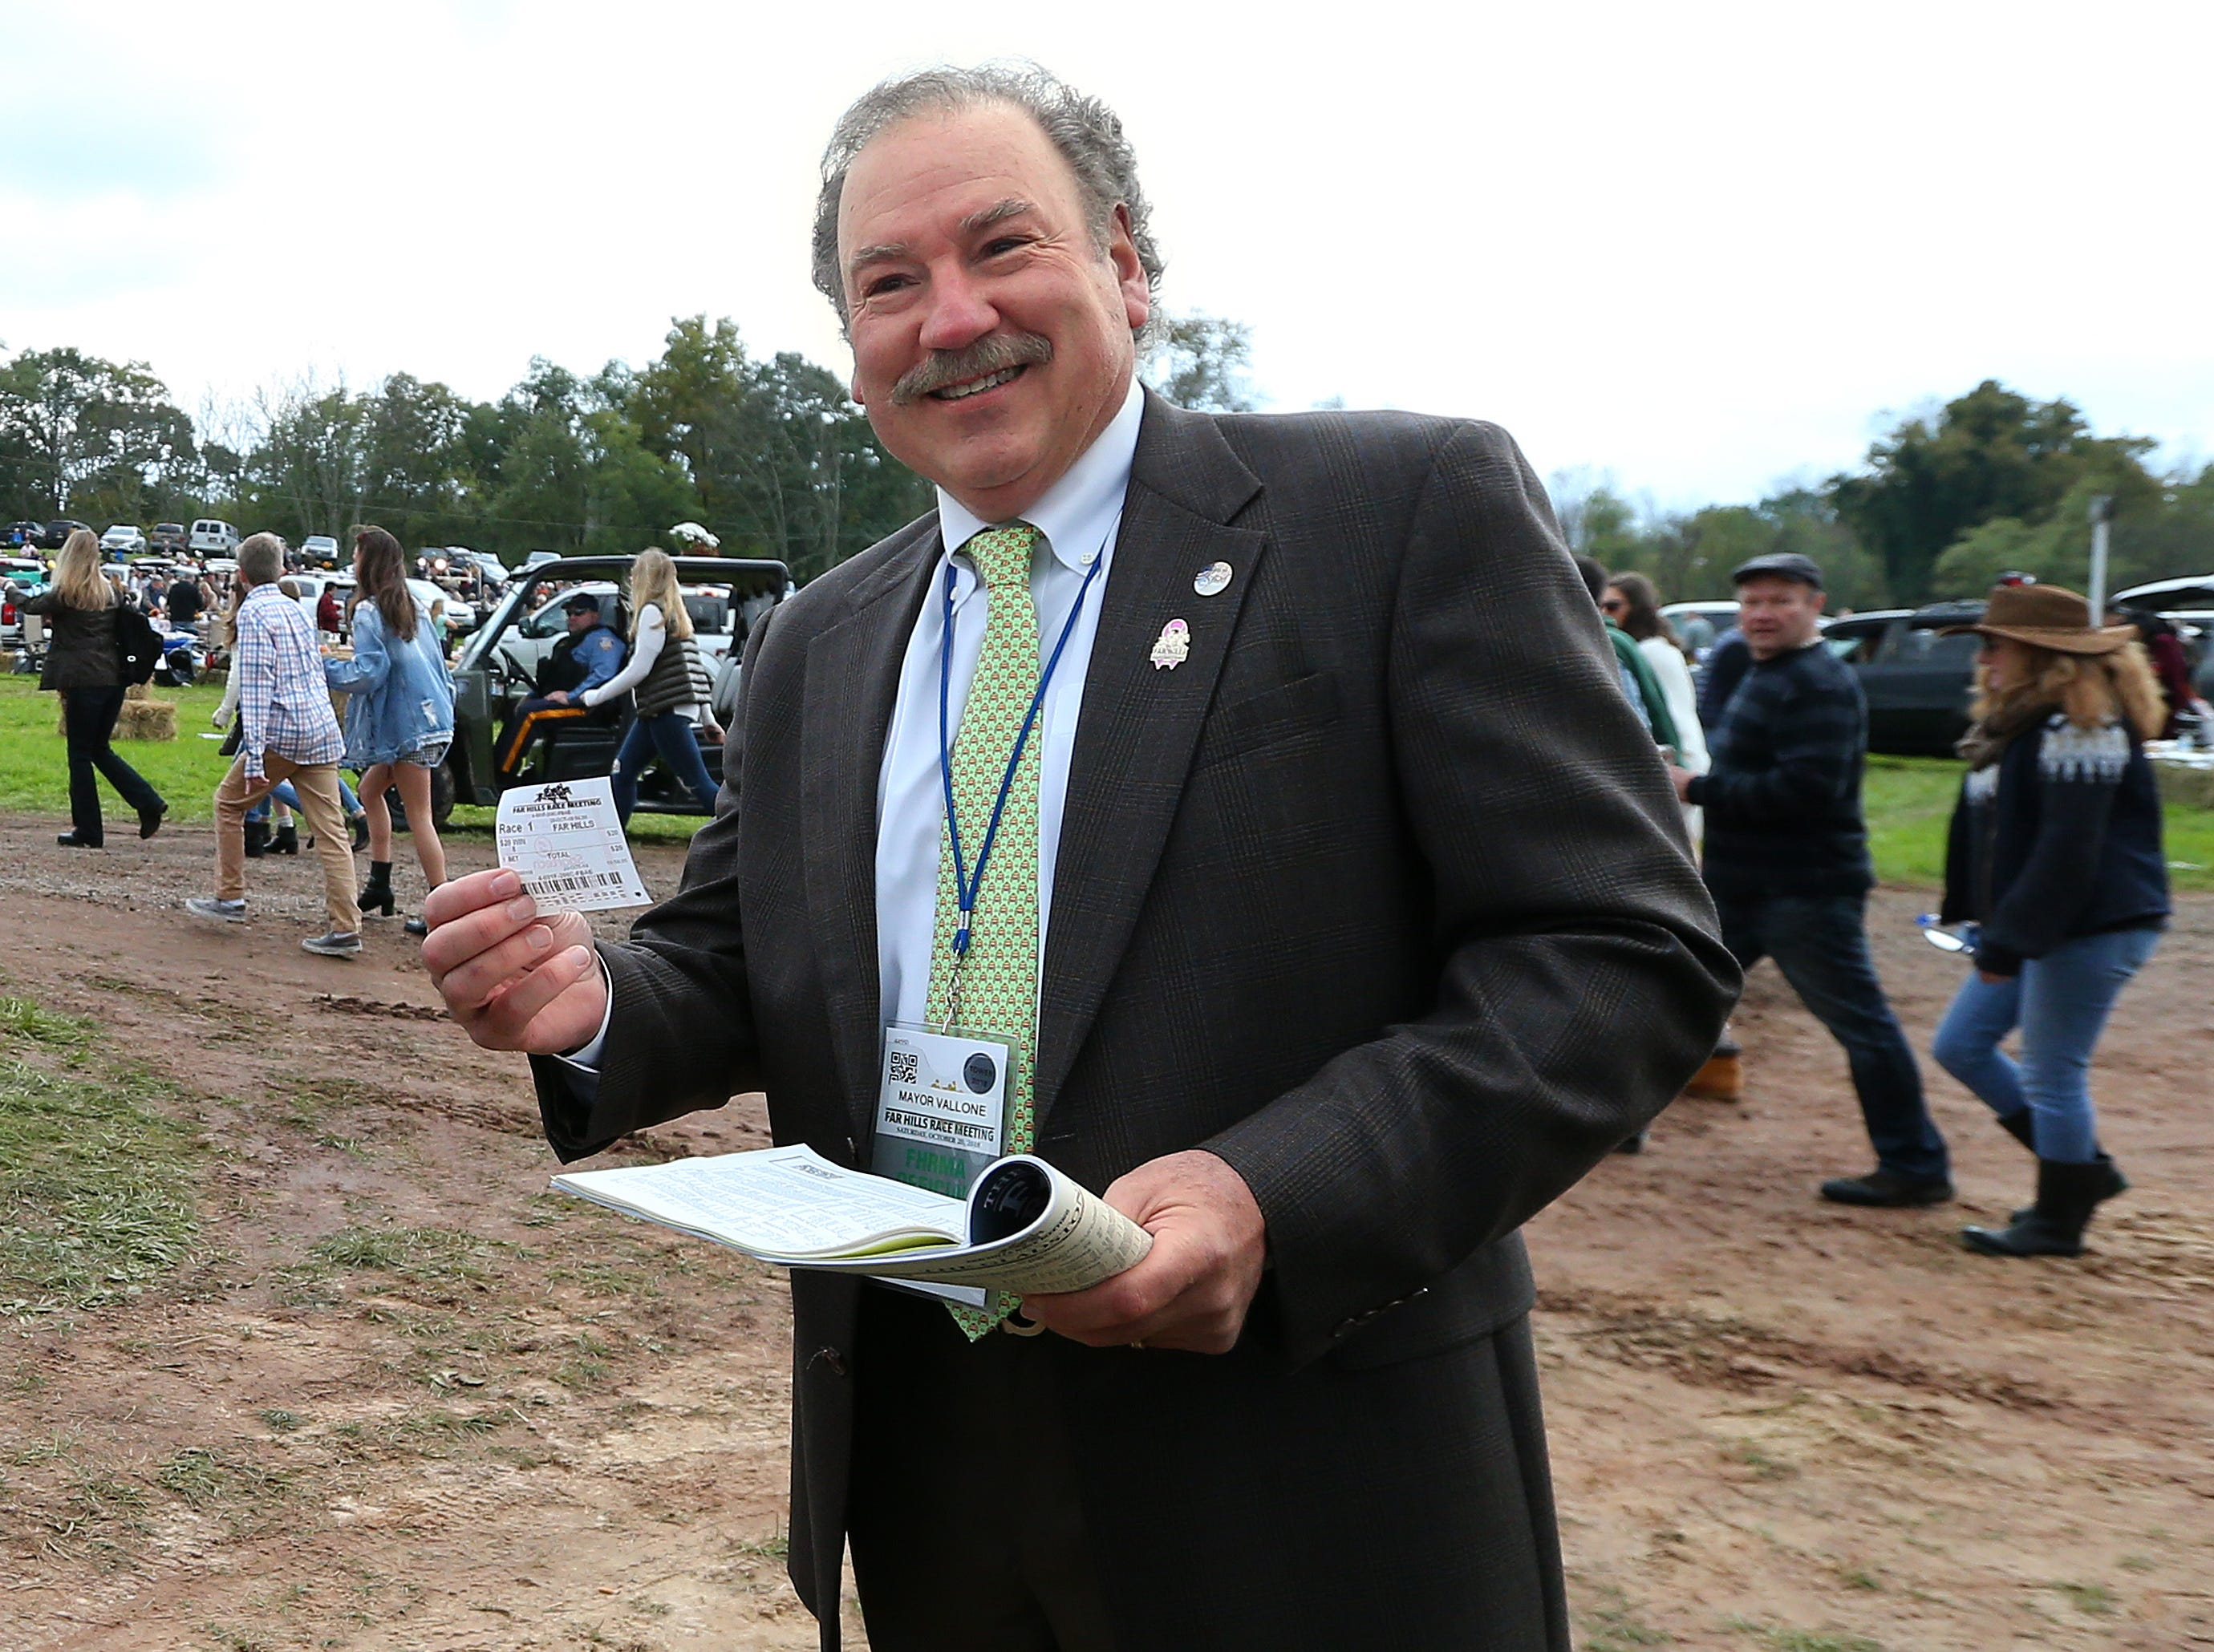 Mayor of Far Hills, New Jersey, Paul Vallone, shows off his ticket after placing the first official bet during the 98th running of the Far Hills Race Meteing at Moorland Farm in Far Hills, N.J. on Saturday, Oct. 20, 2015. Photo by Rich Schultz/ HNT